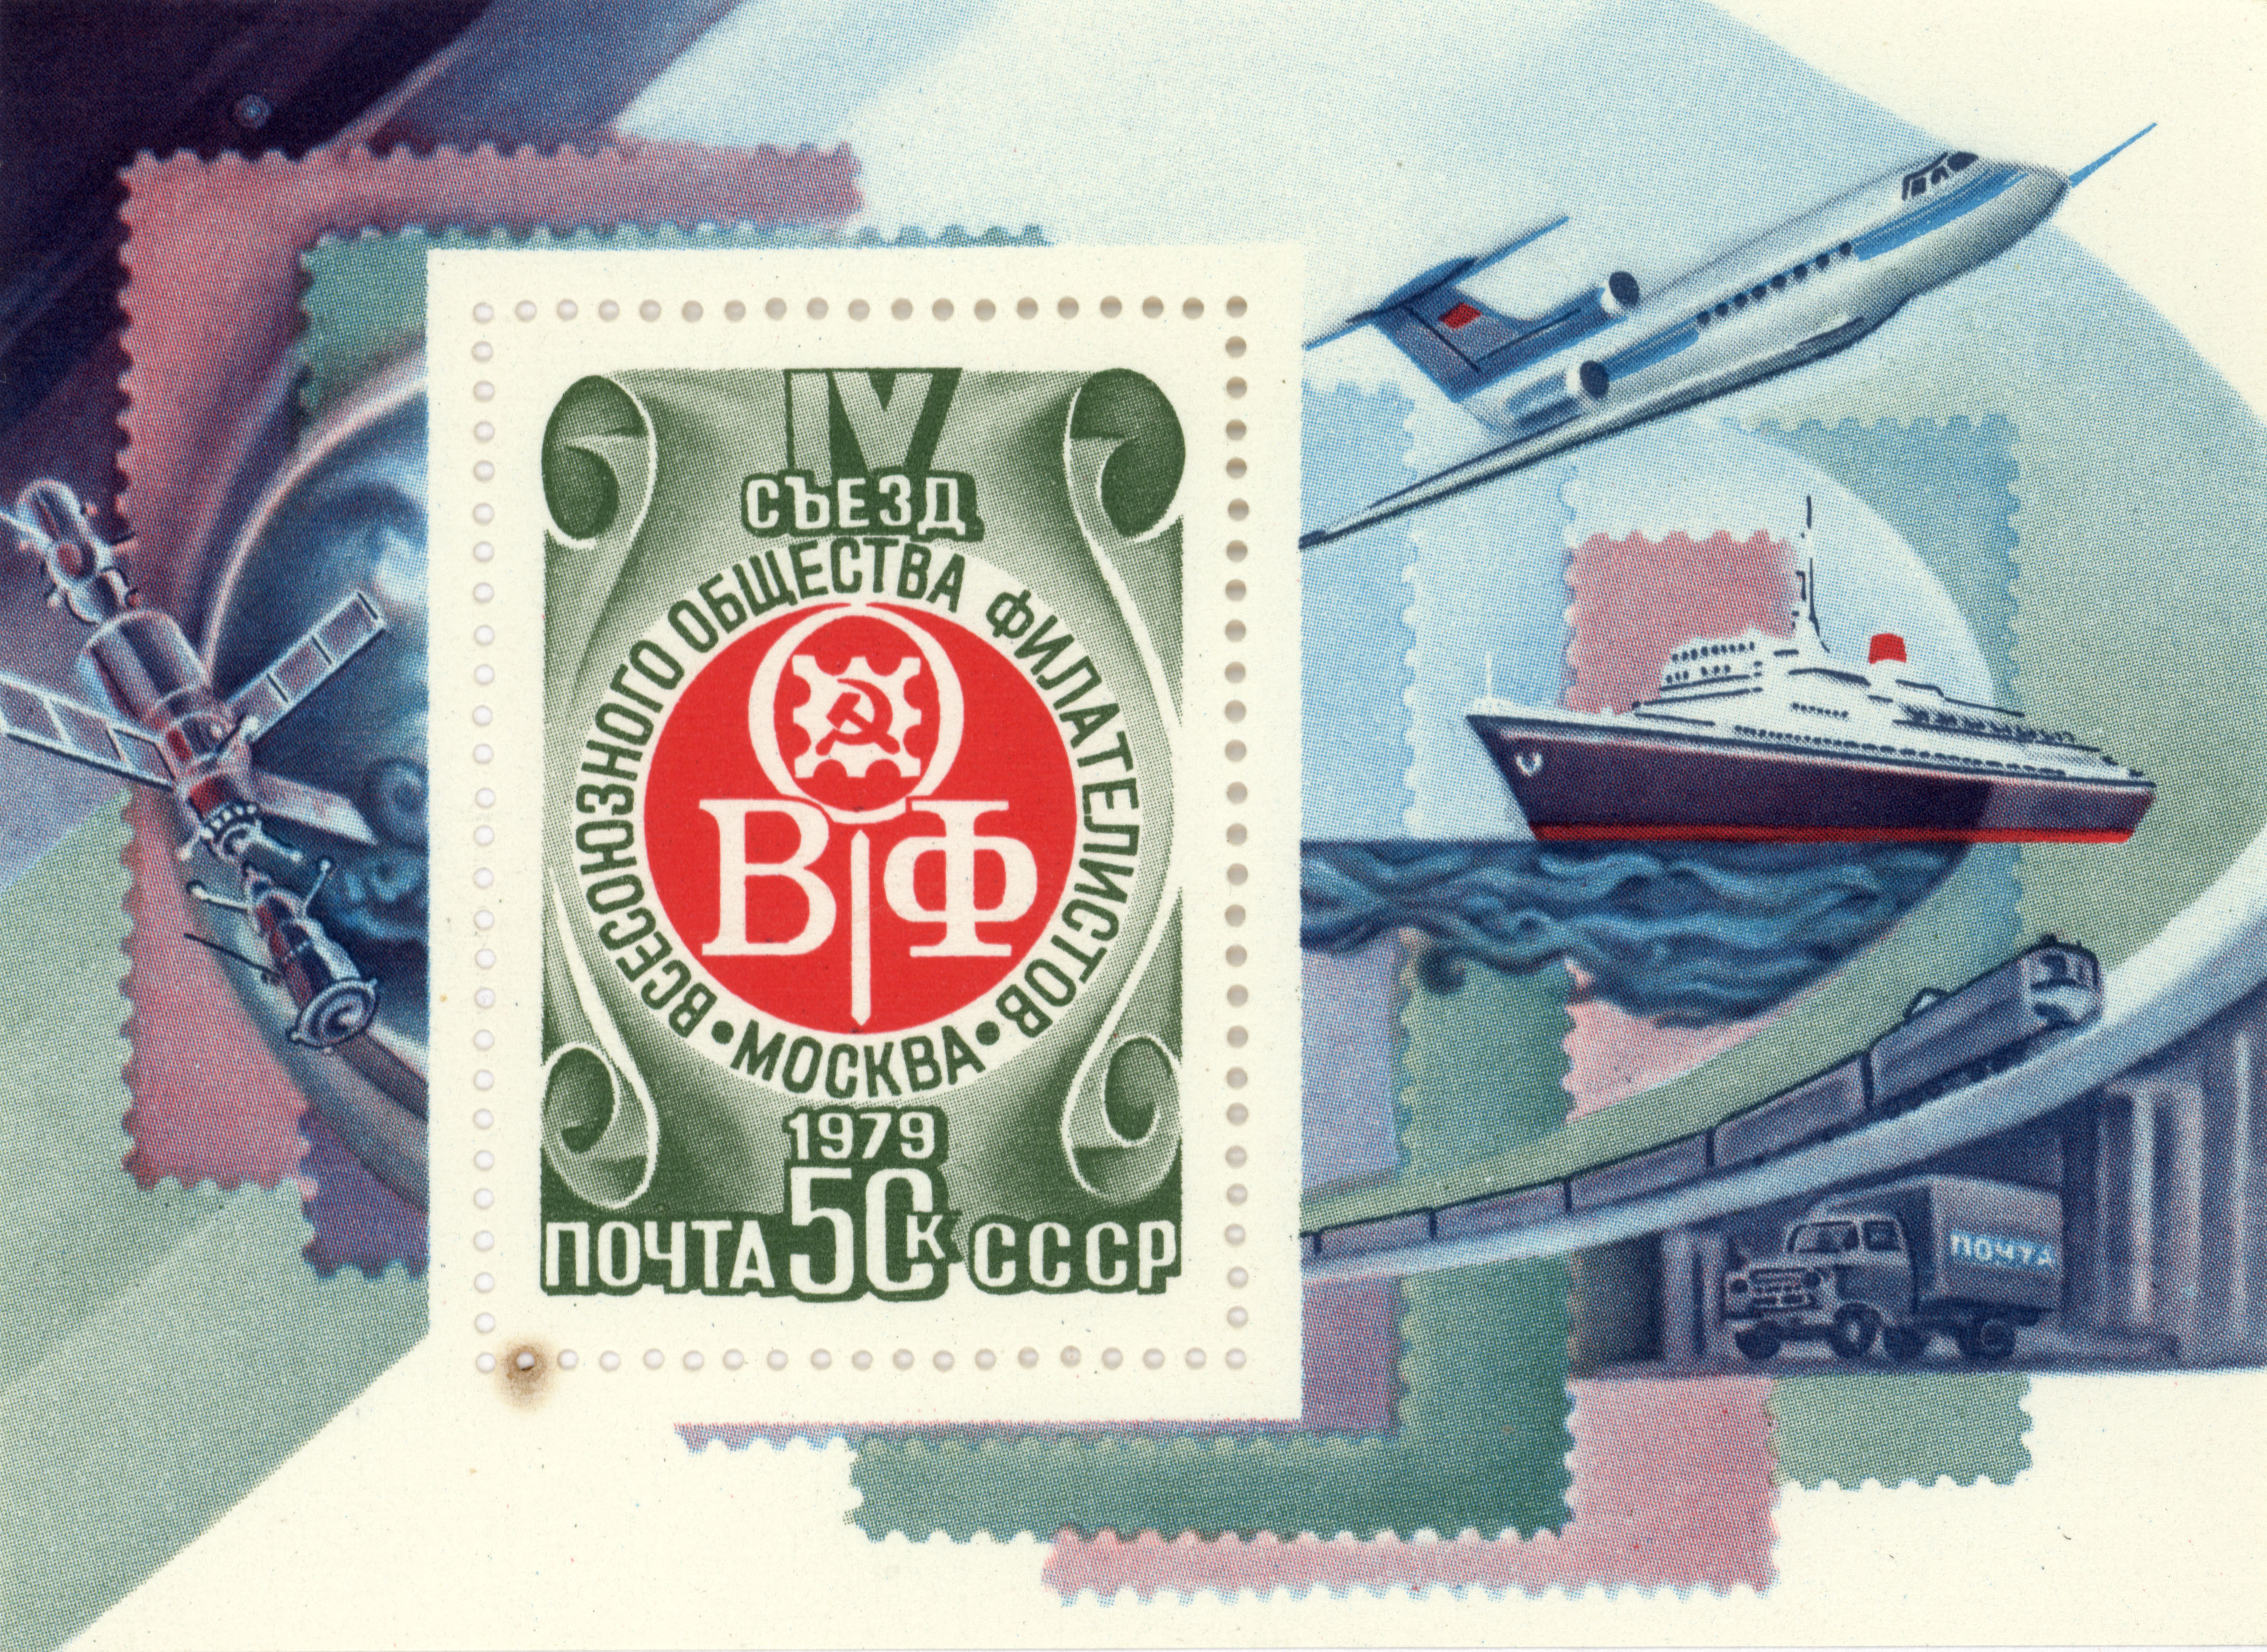 4th meeting of USSR philatelists society